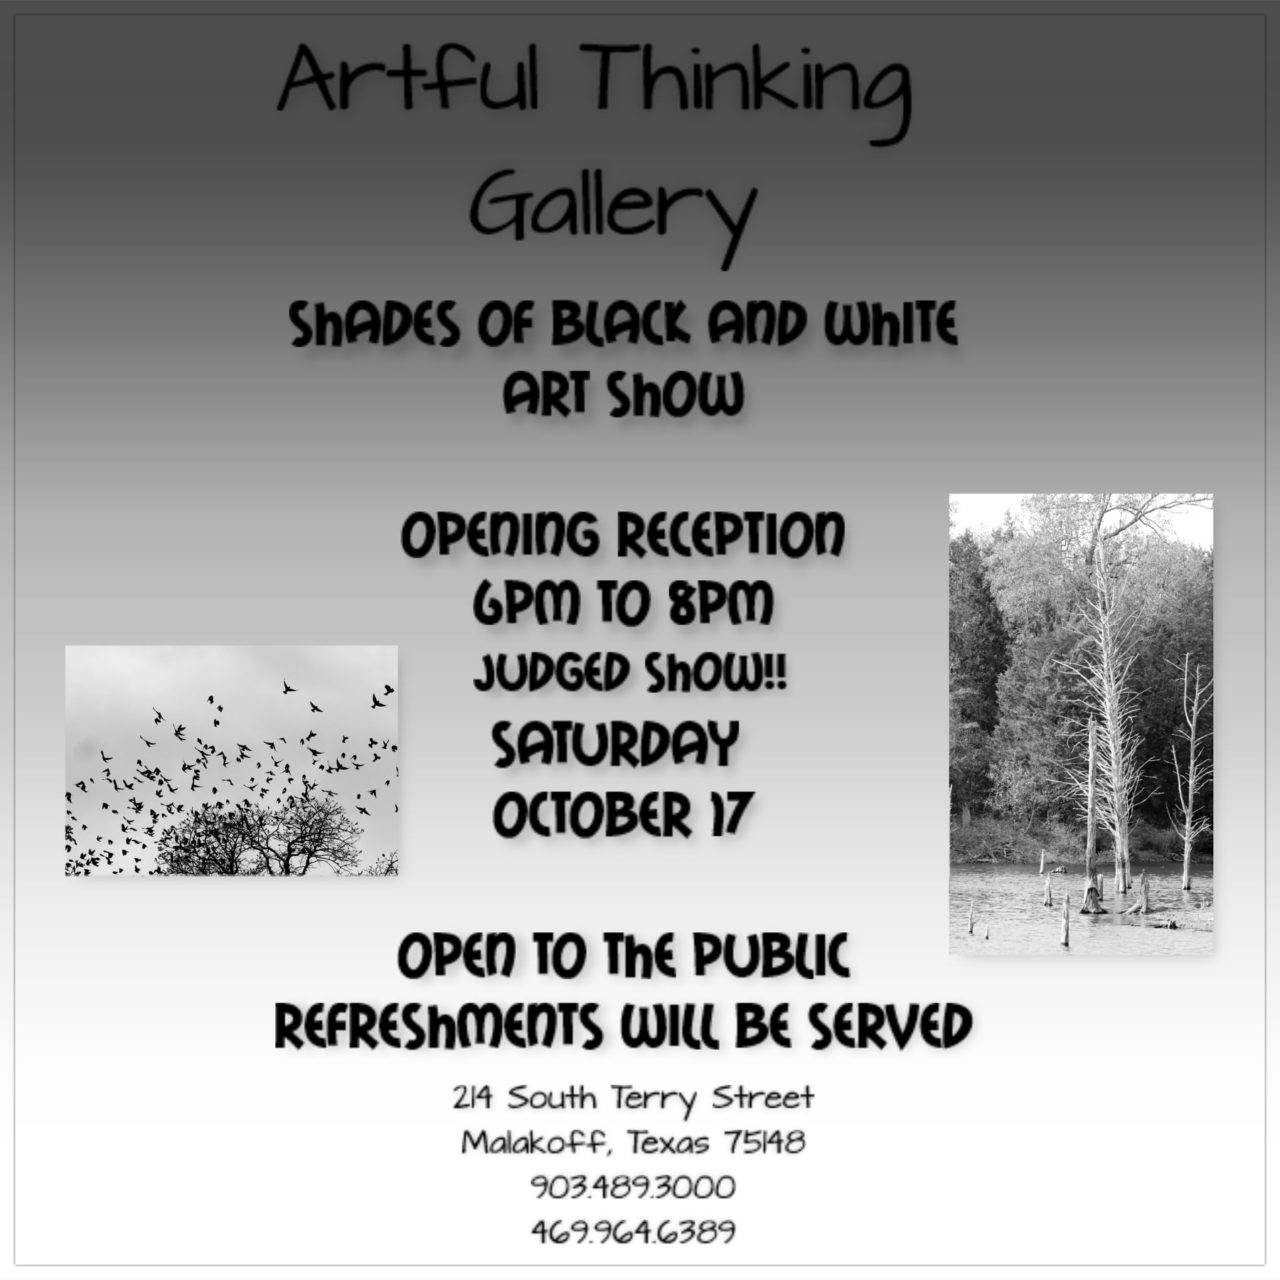 Shades of Black And White Art Show